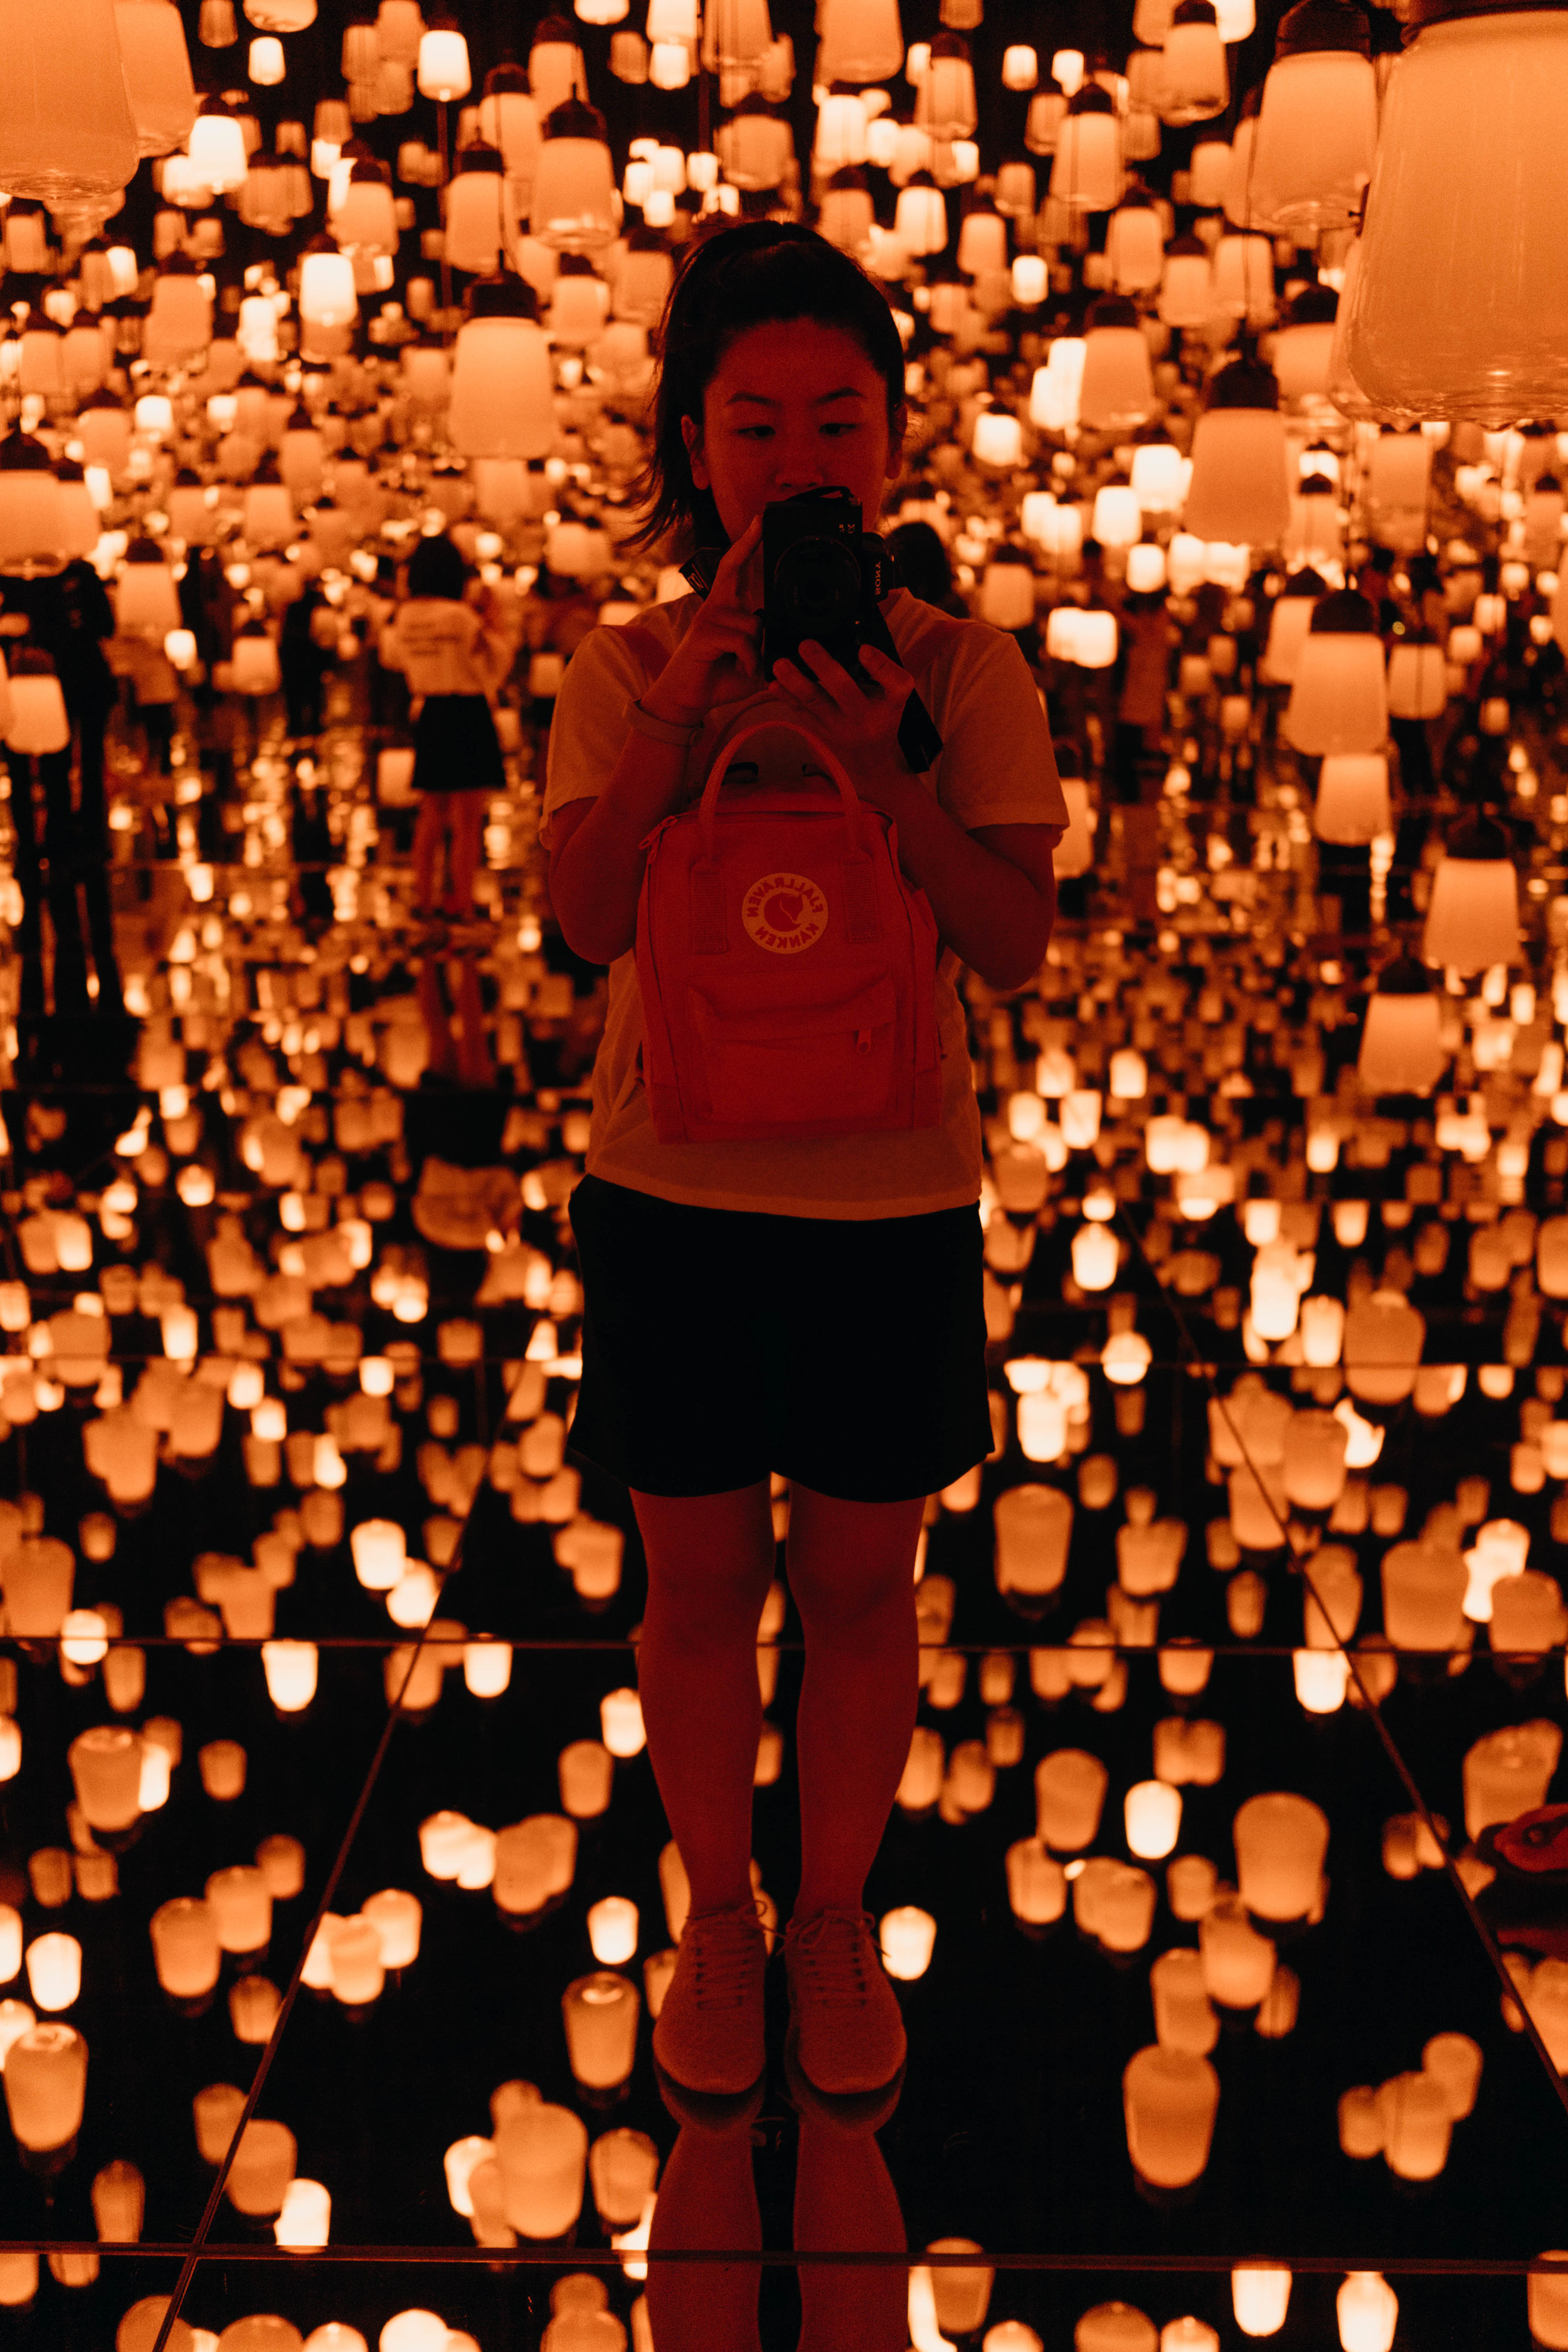 A Three-Day Girls' Trip to Tokyo | On the Street Where We Live ( aretherelilactrees.com )  teamLab Borderless, museum, Forest of Lamps, Forest of Resonating Lamps, lanterns, Tokyo, Japan